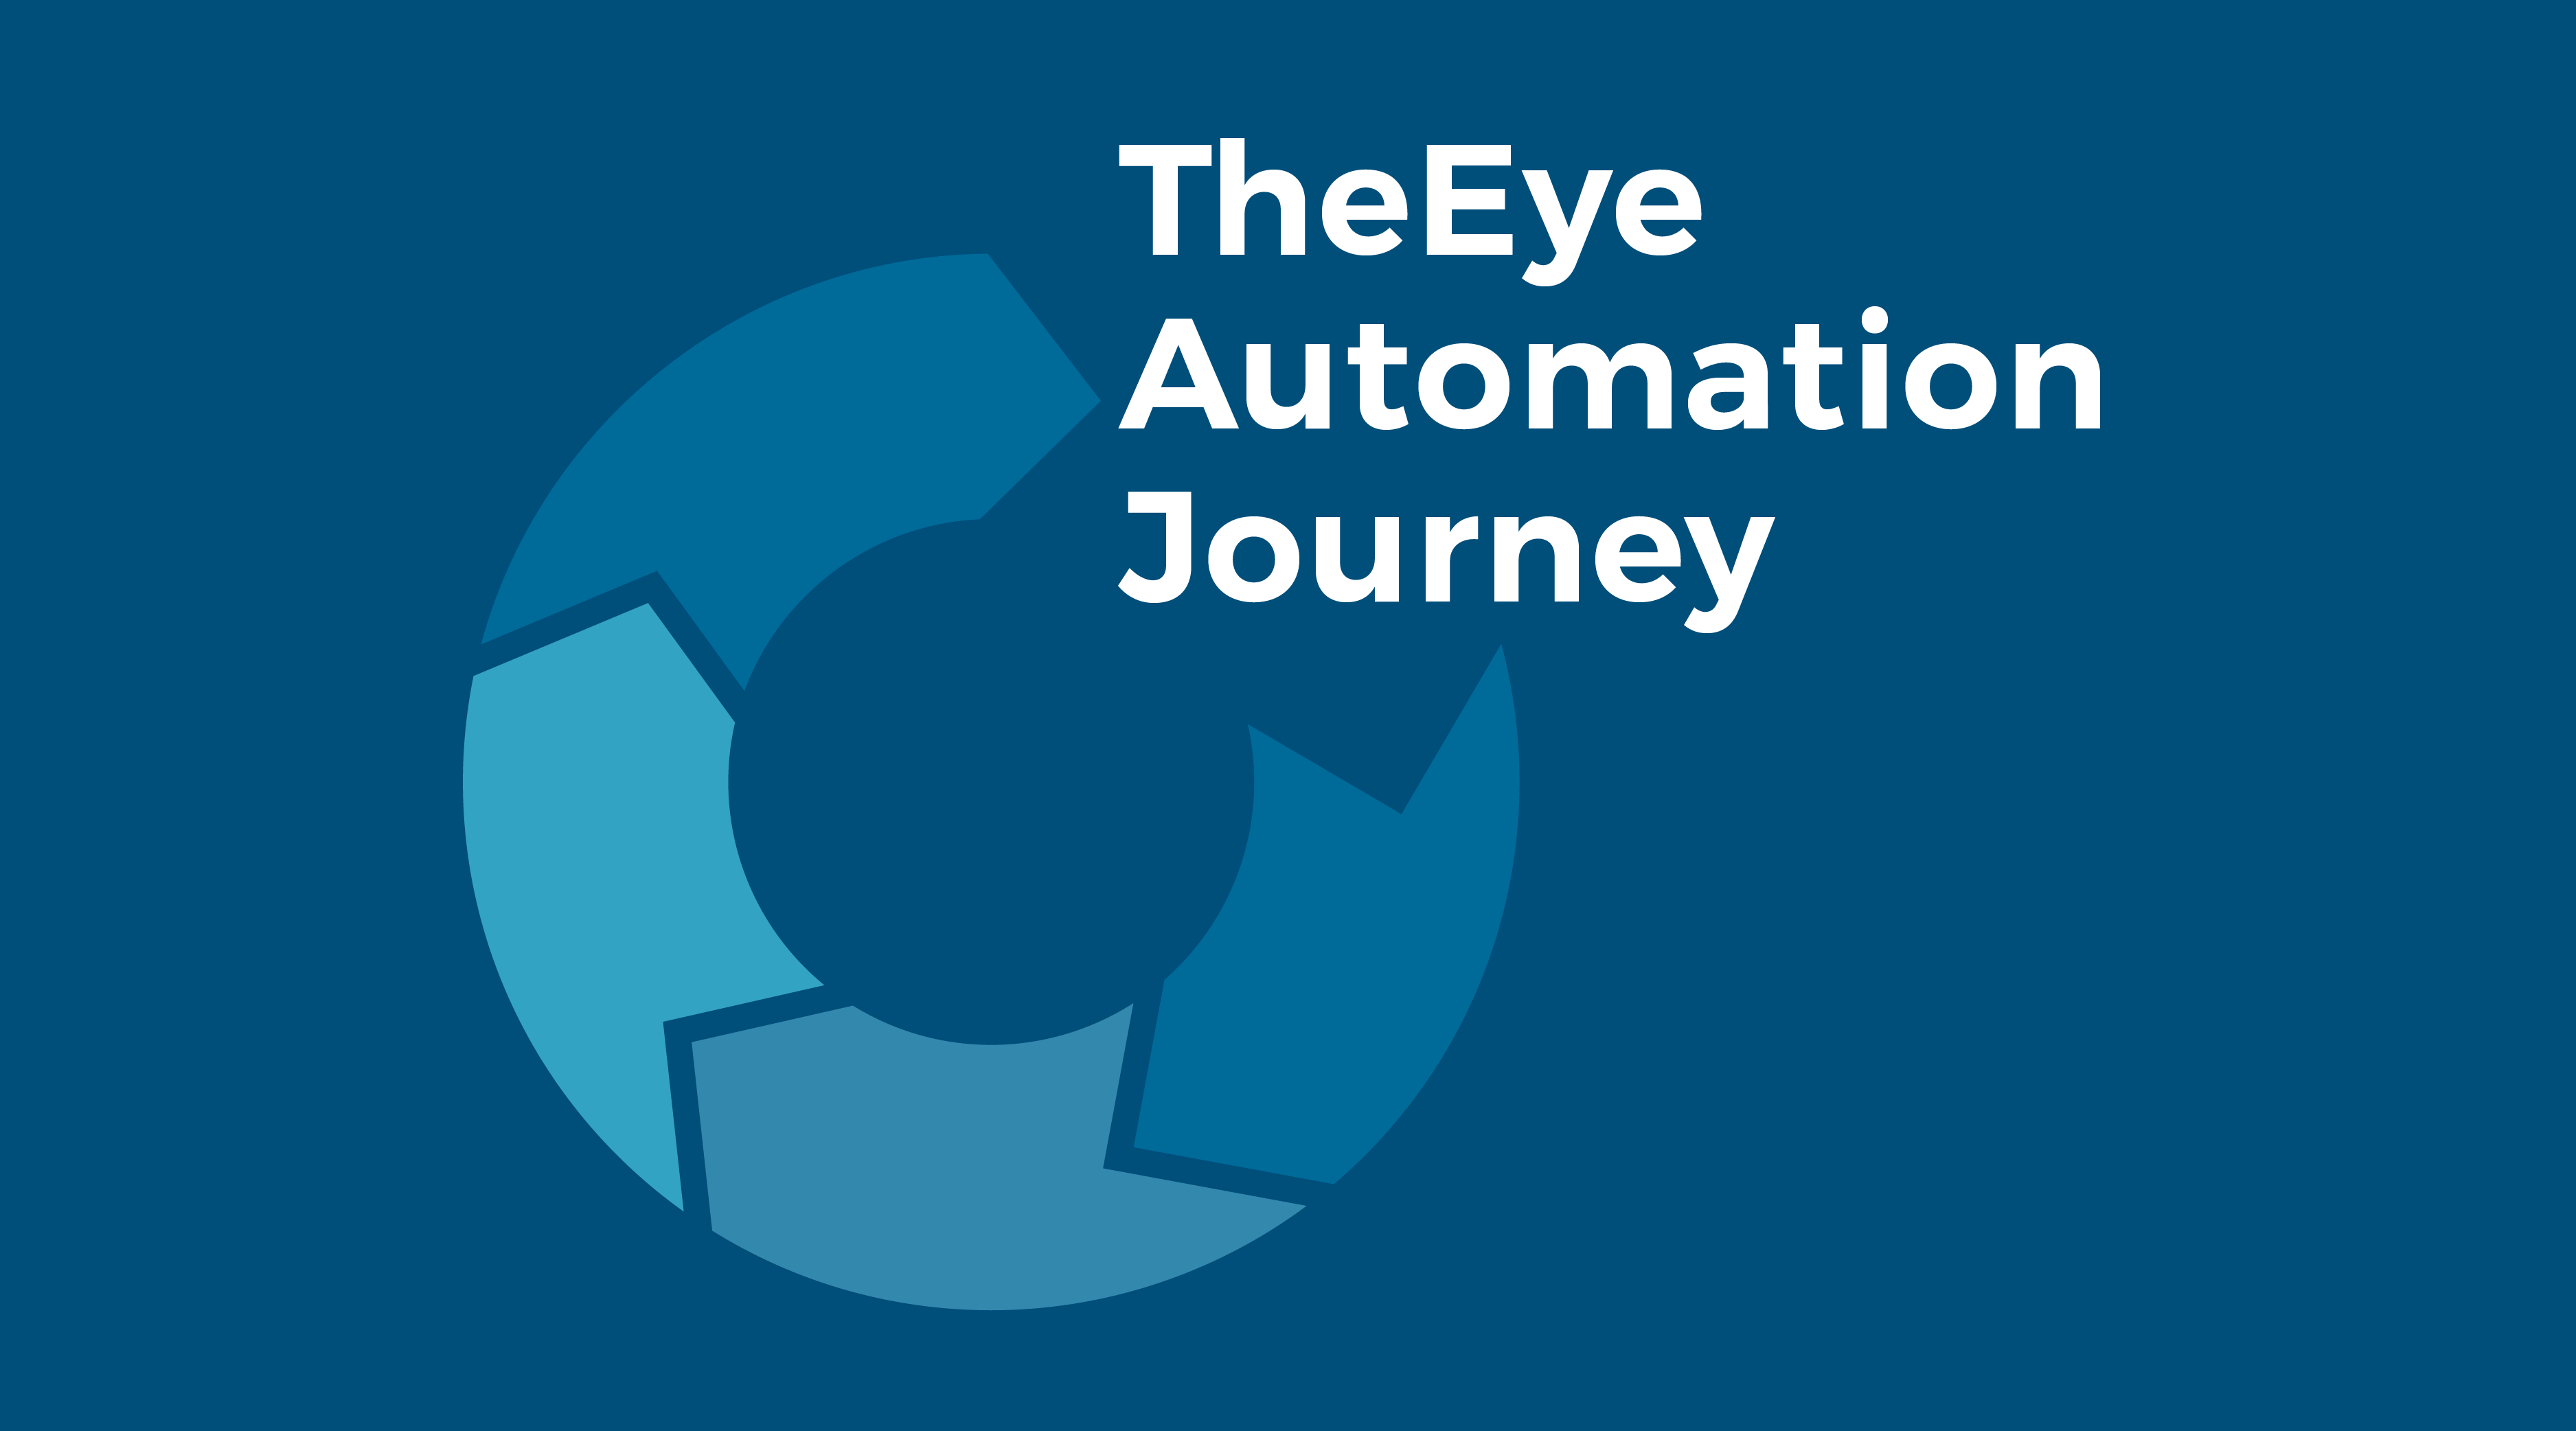 TheEye Automation Journey